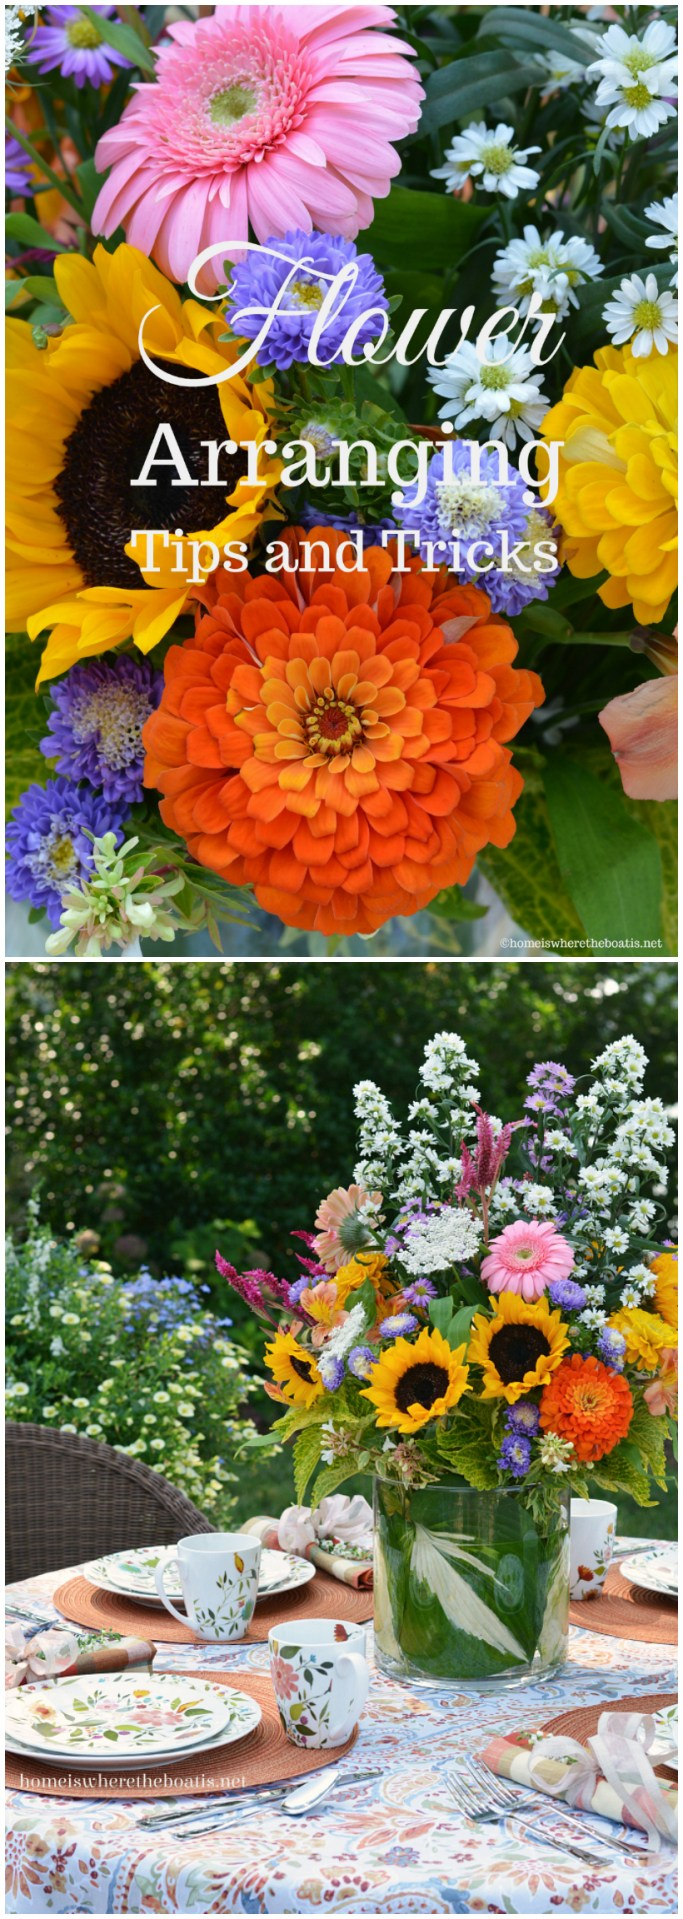 Flower Arranging Techniques, Tips and Tricks using flowers from the garden or grocery store! | ©homeiswheretheboatis.net